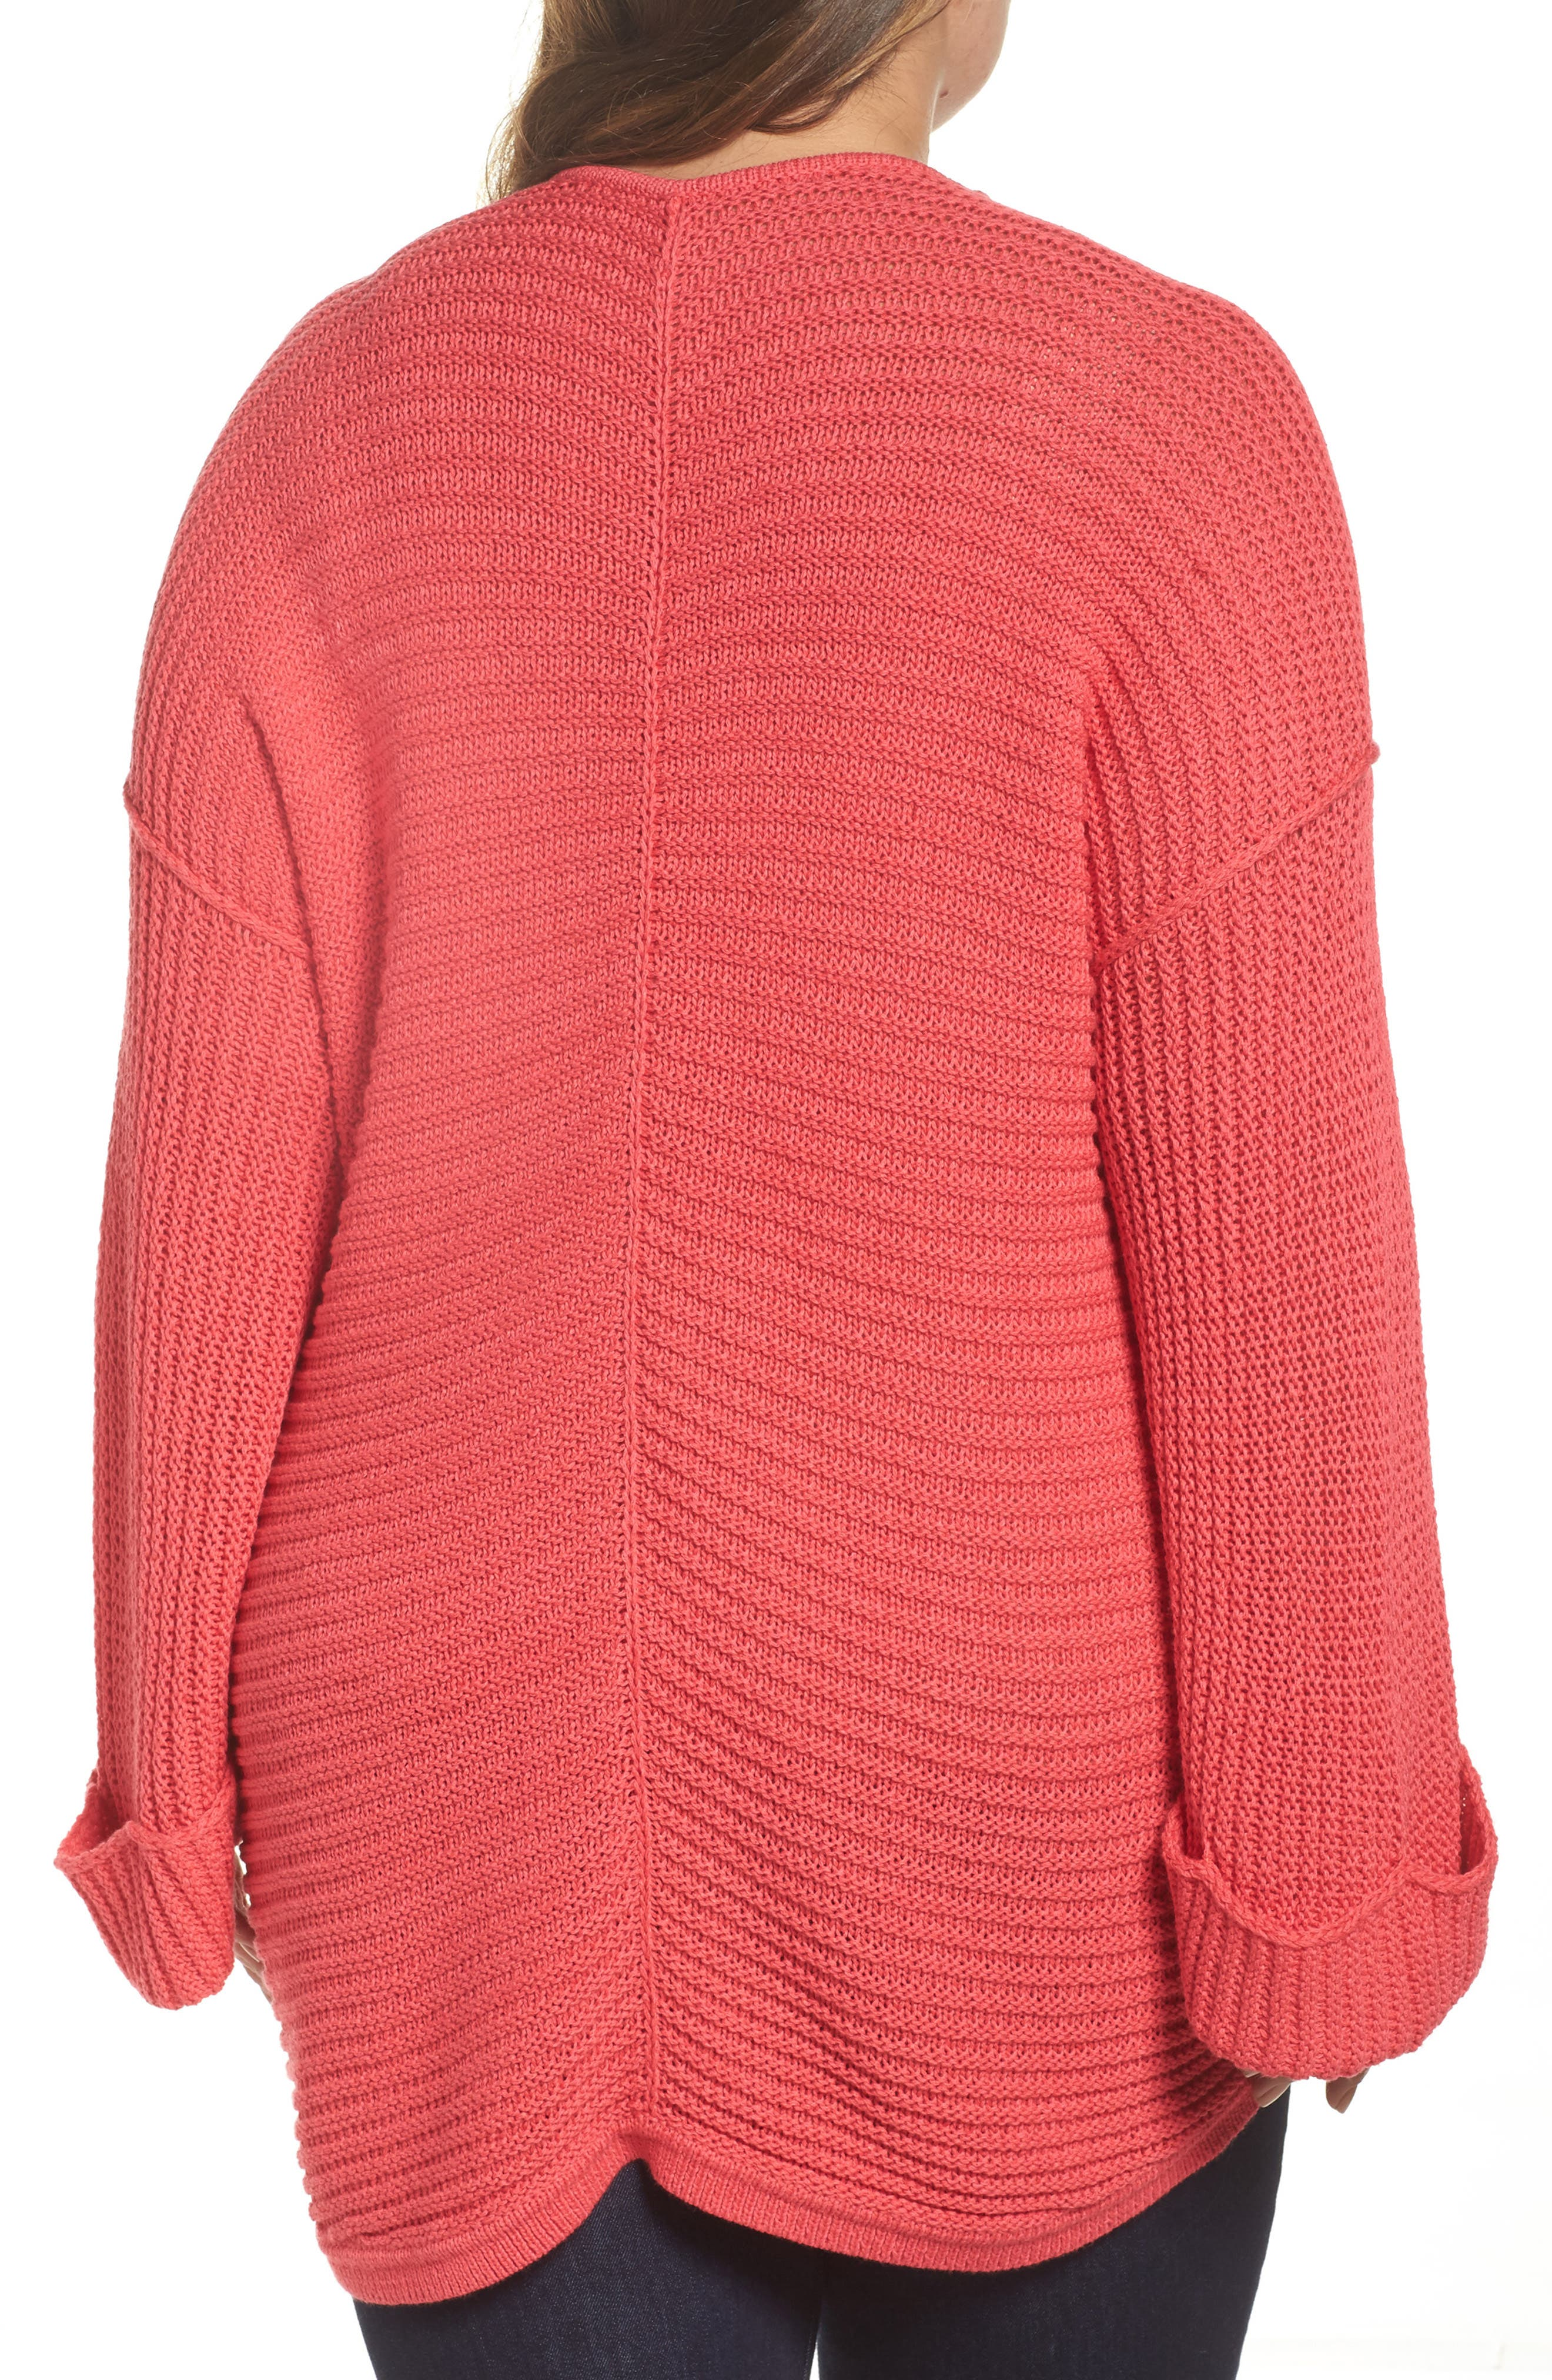 Cuffed Bell Sleeve Sweater,                             Alternate thumbnail 2, color,                             Pink Ribbon